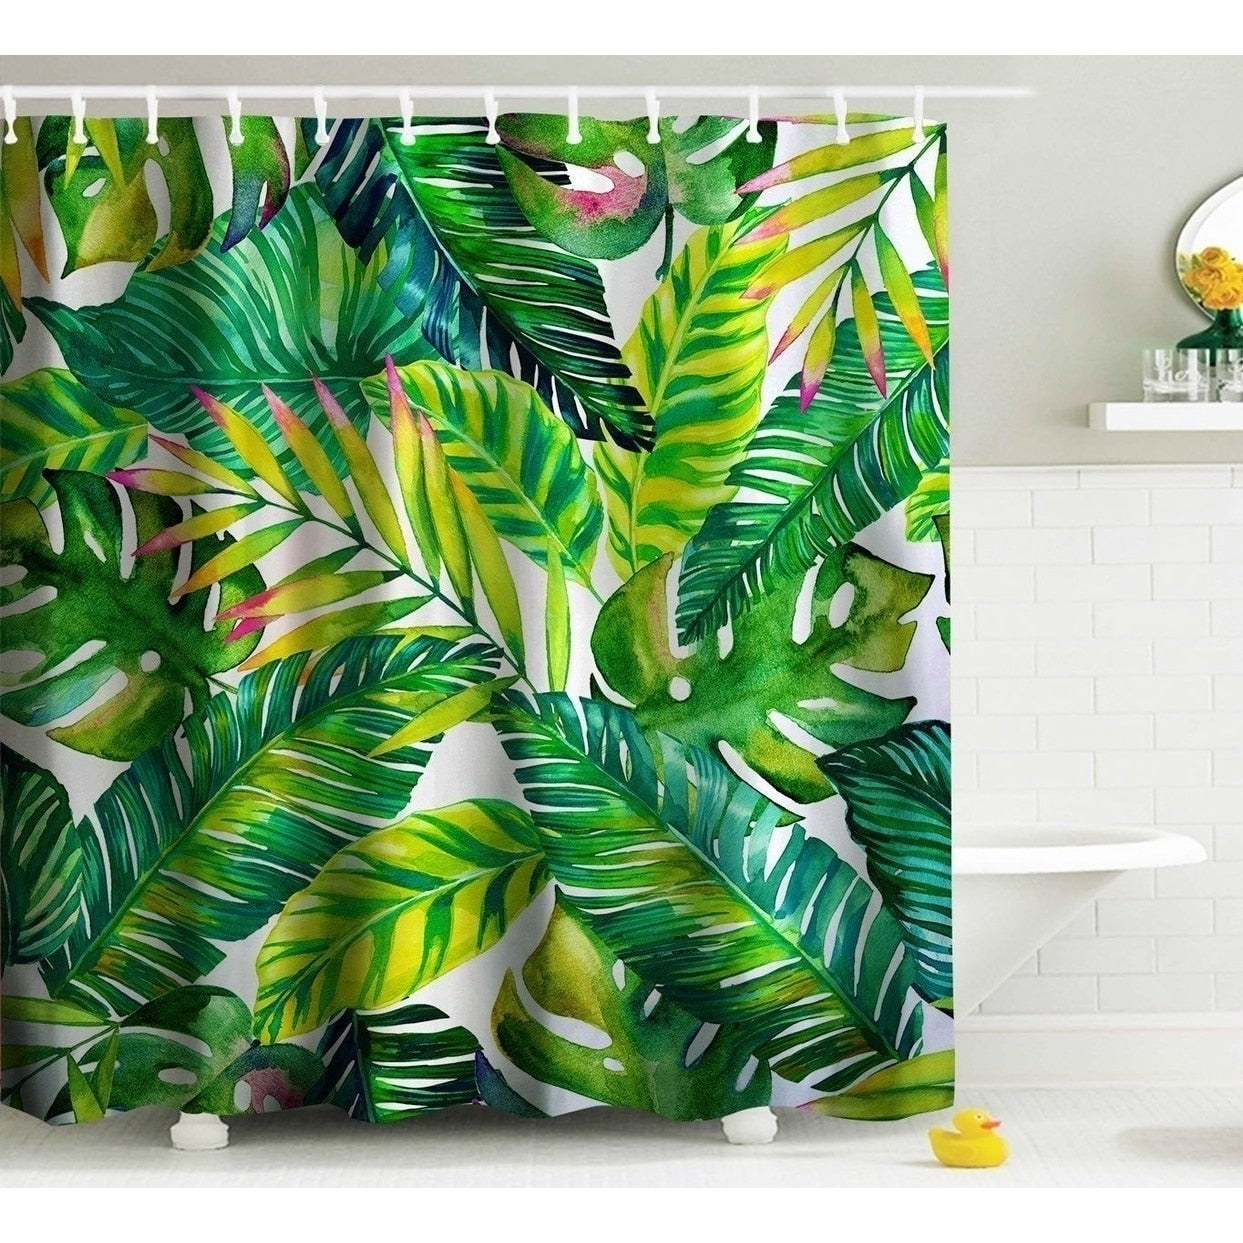 Shop Green Banana Leaf Shower Curtain Fabric Curtains With Hooks